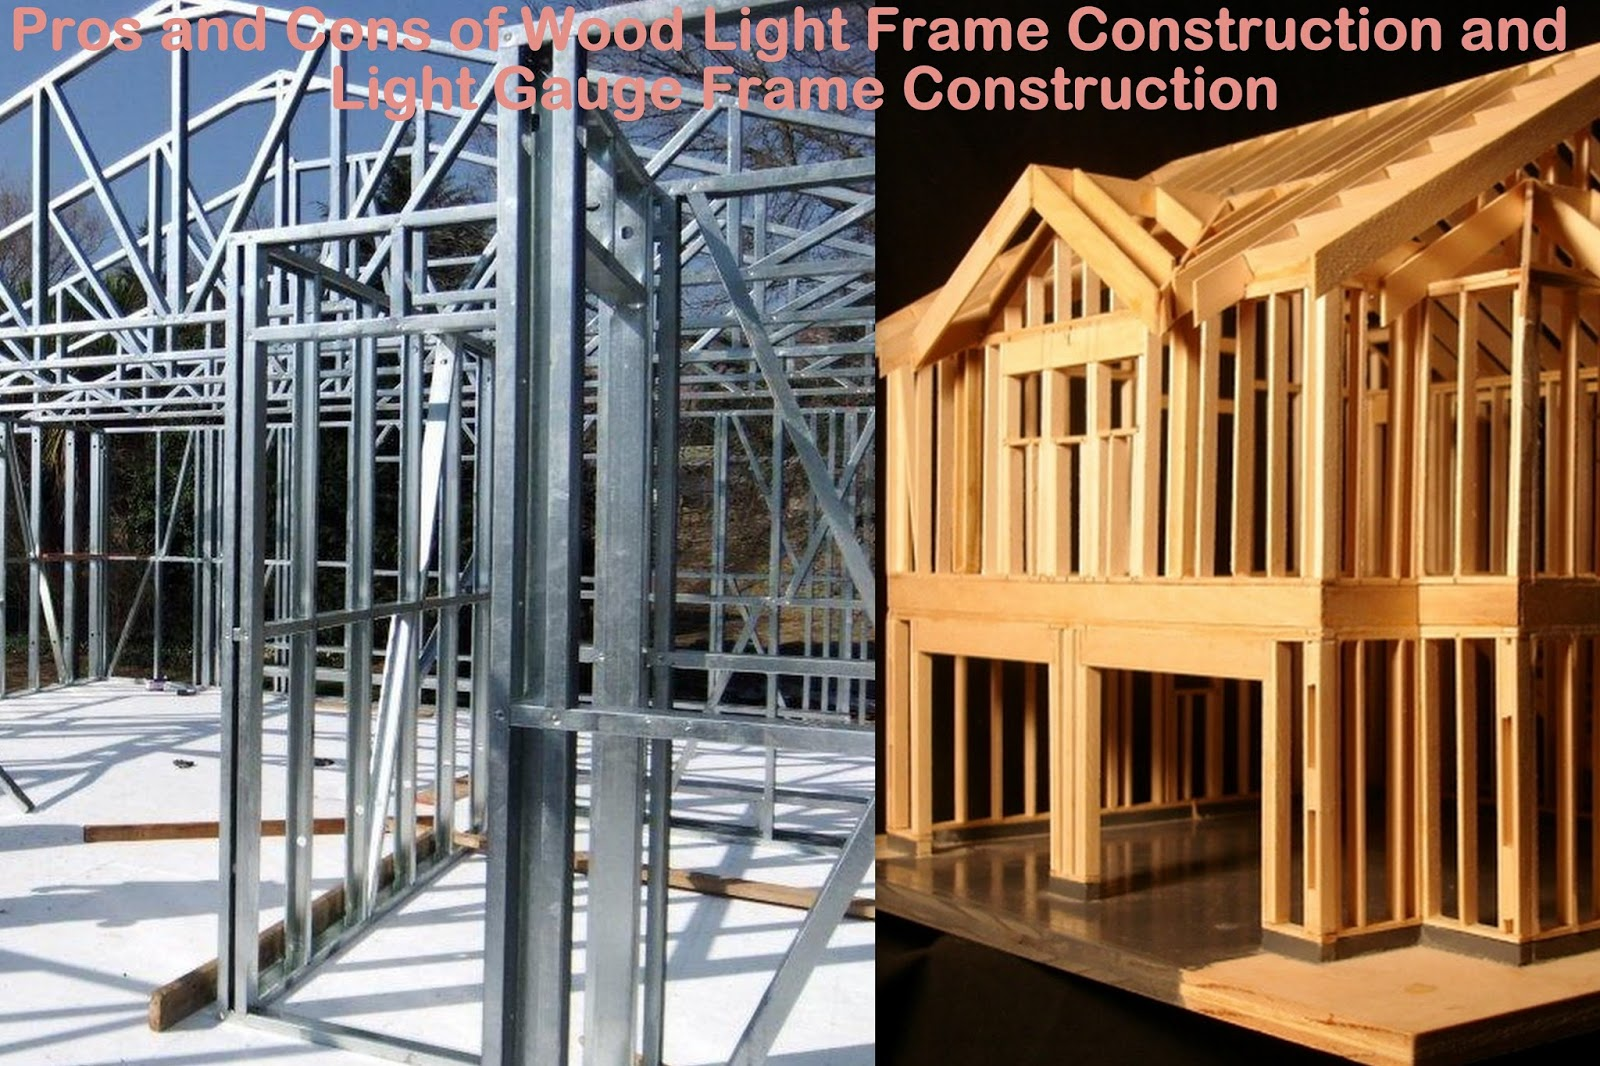 pros and cons of wood light frame construction and light gauge steel frame construction - Wood Frame Construction